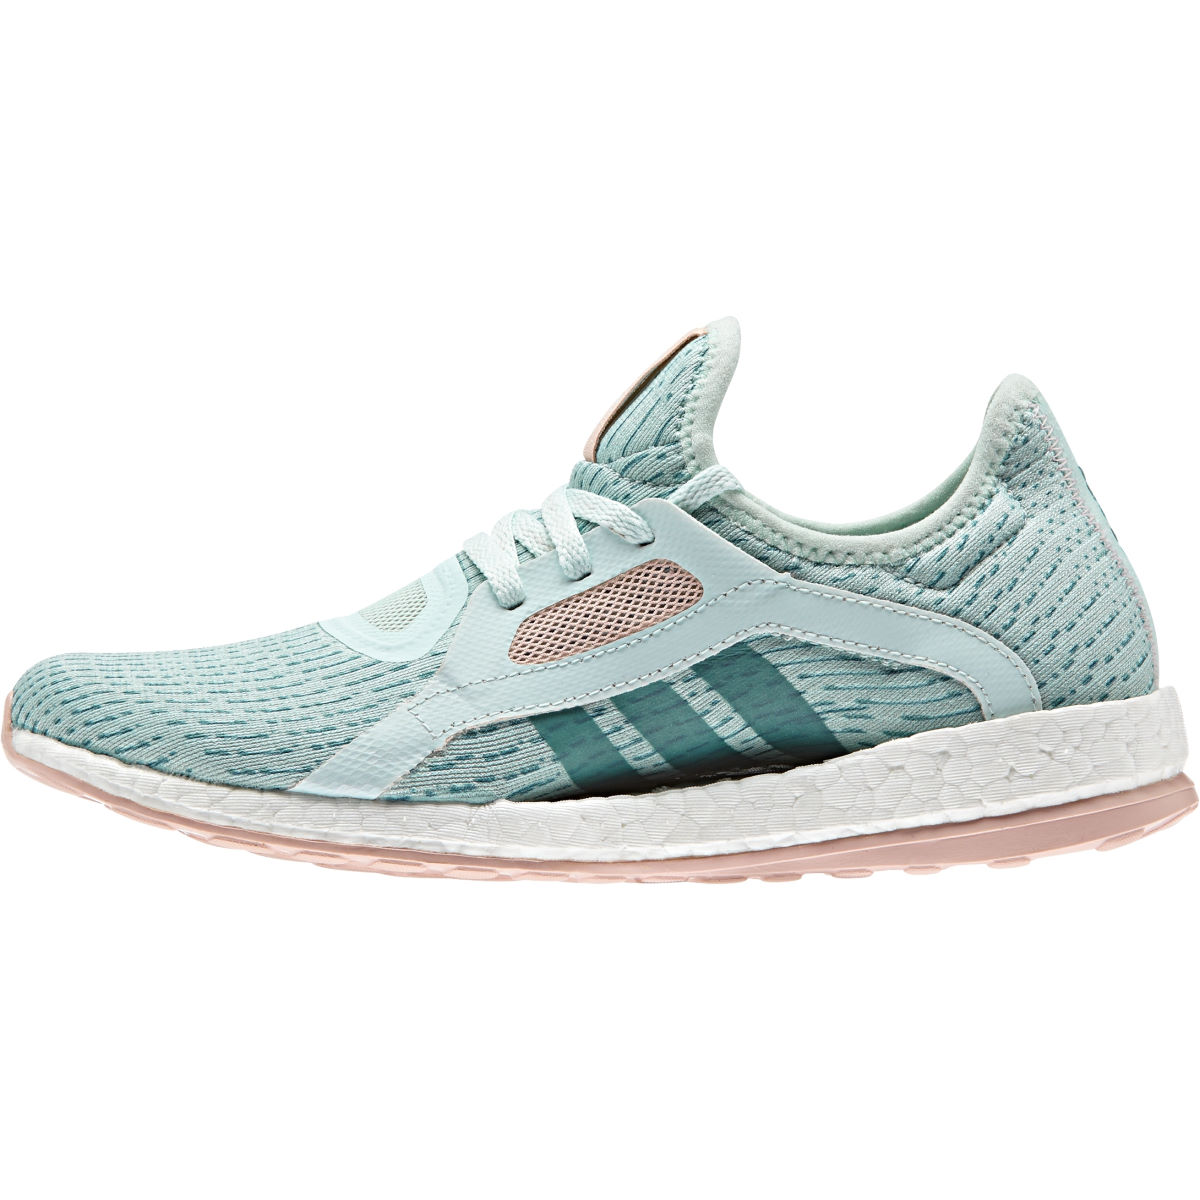 Image of Adidas Women's Pure Boost X (Green/Pink, AW16) Training Running Shoes